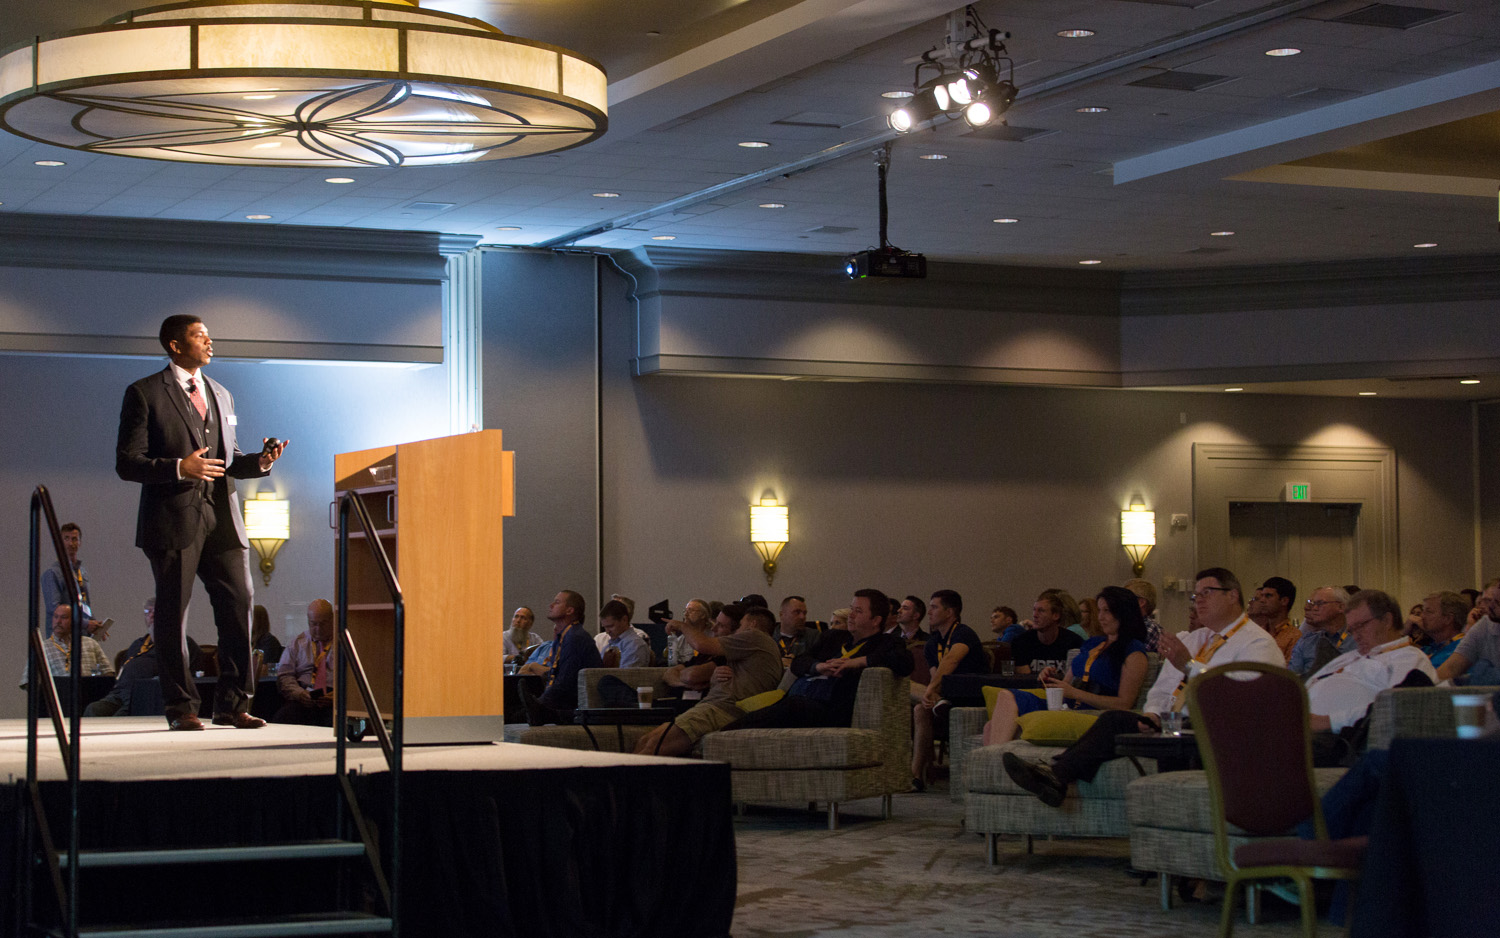 Photo: Paul Rich | Corporate Meeting Planning